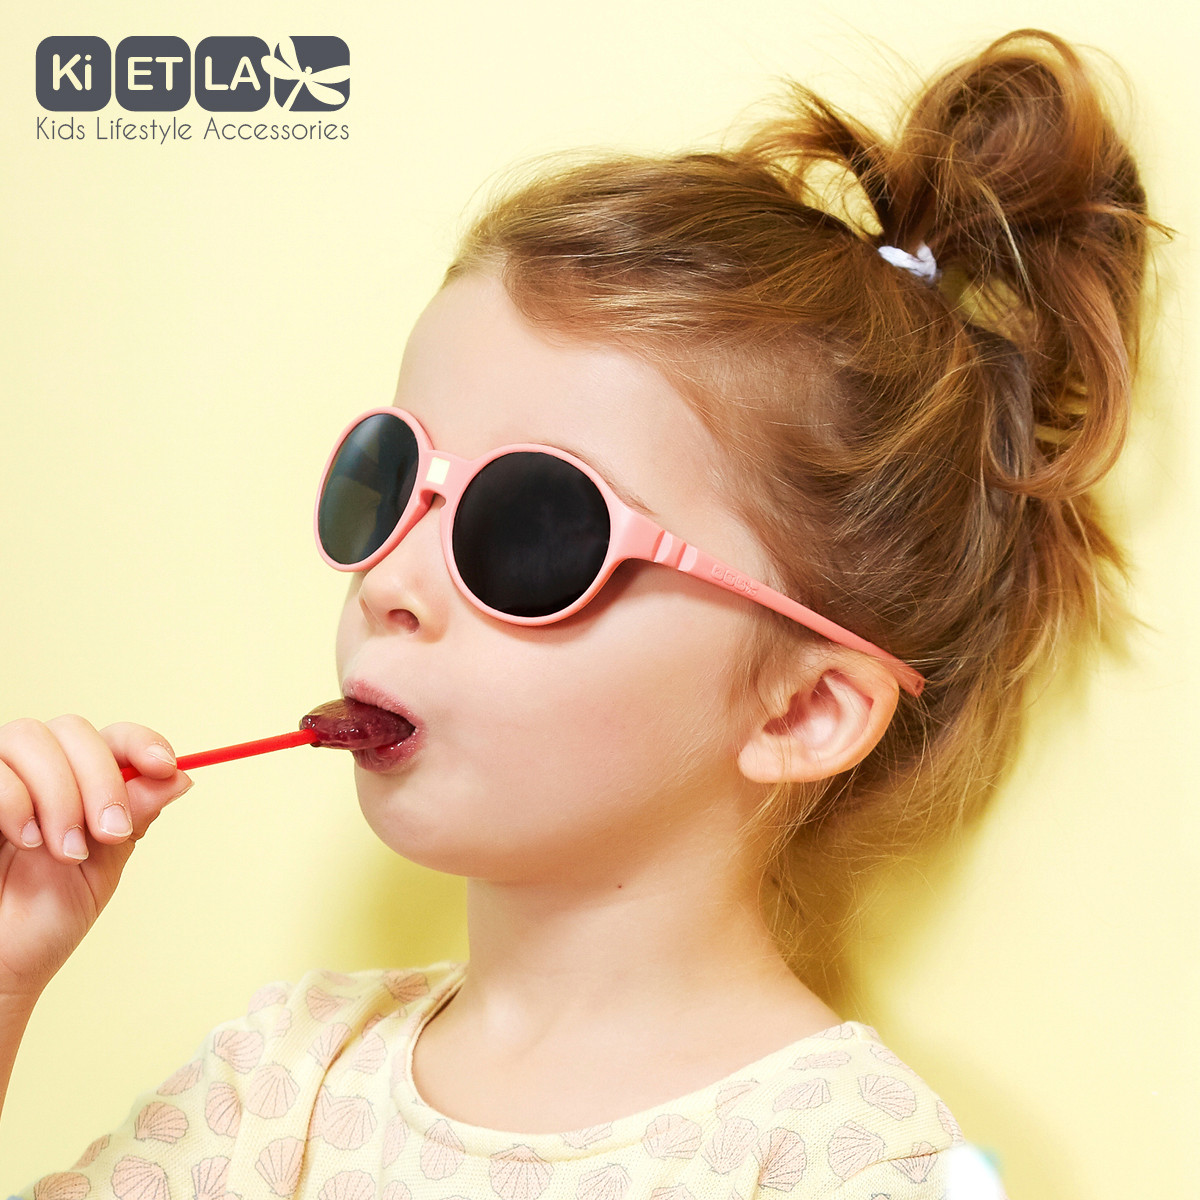 New Ki ET LA Sunglasses for Kids French Style 100/% Unbreakable 4-6 Years Old